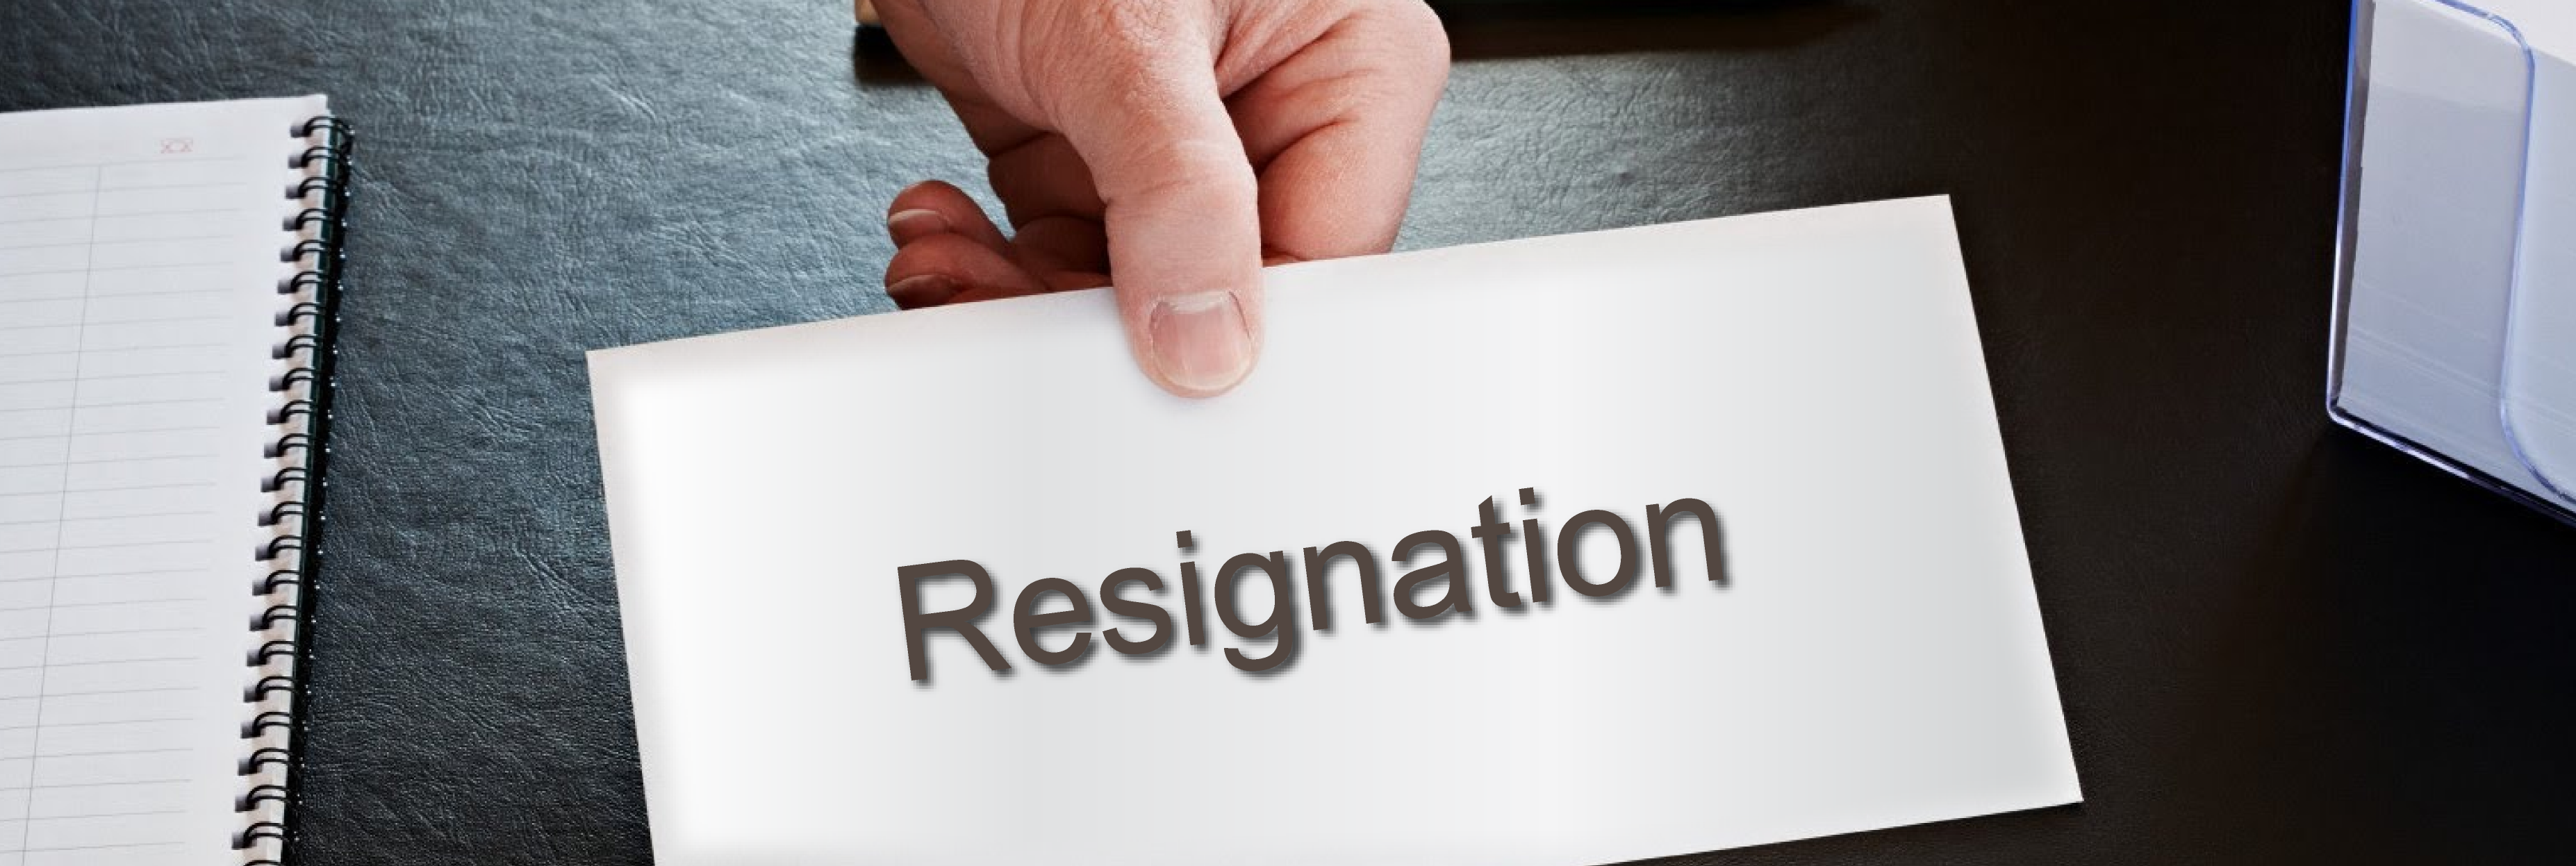 Congrats on the New Job! 5 Tips for Making Your Resignation Easier